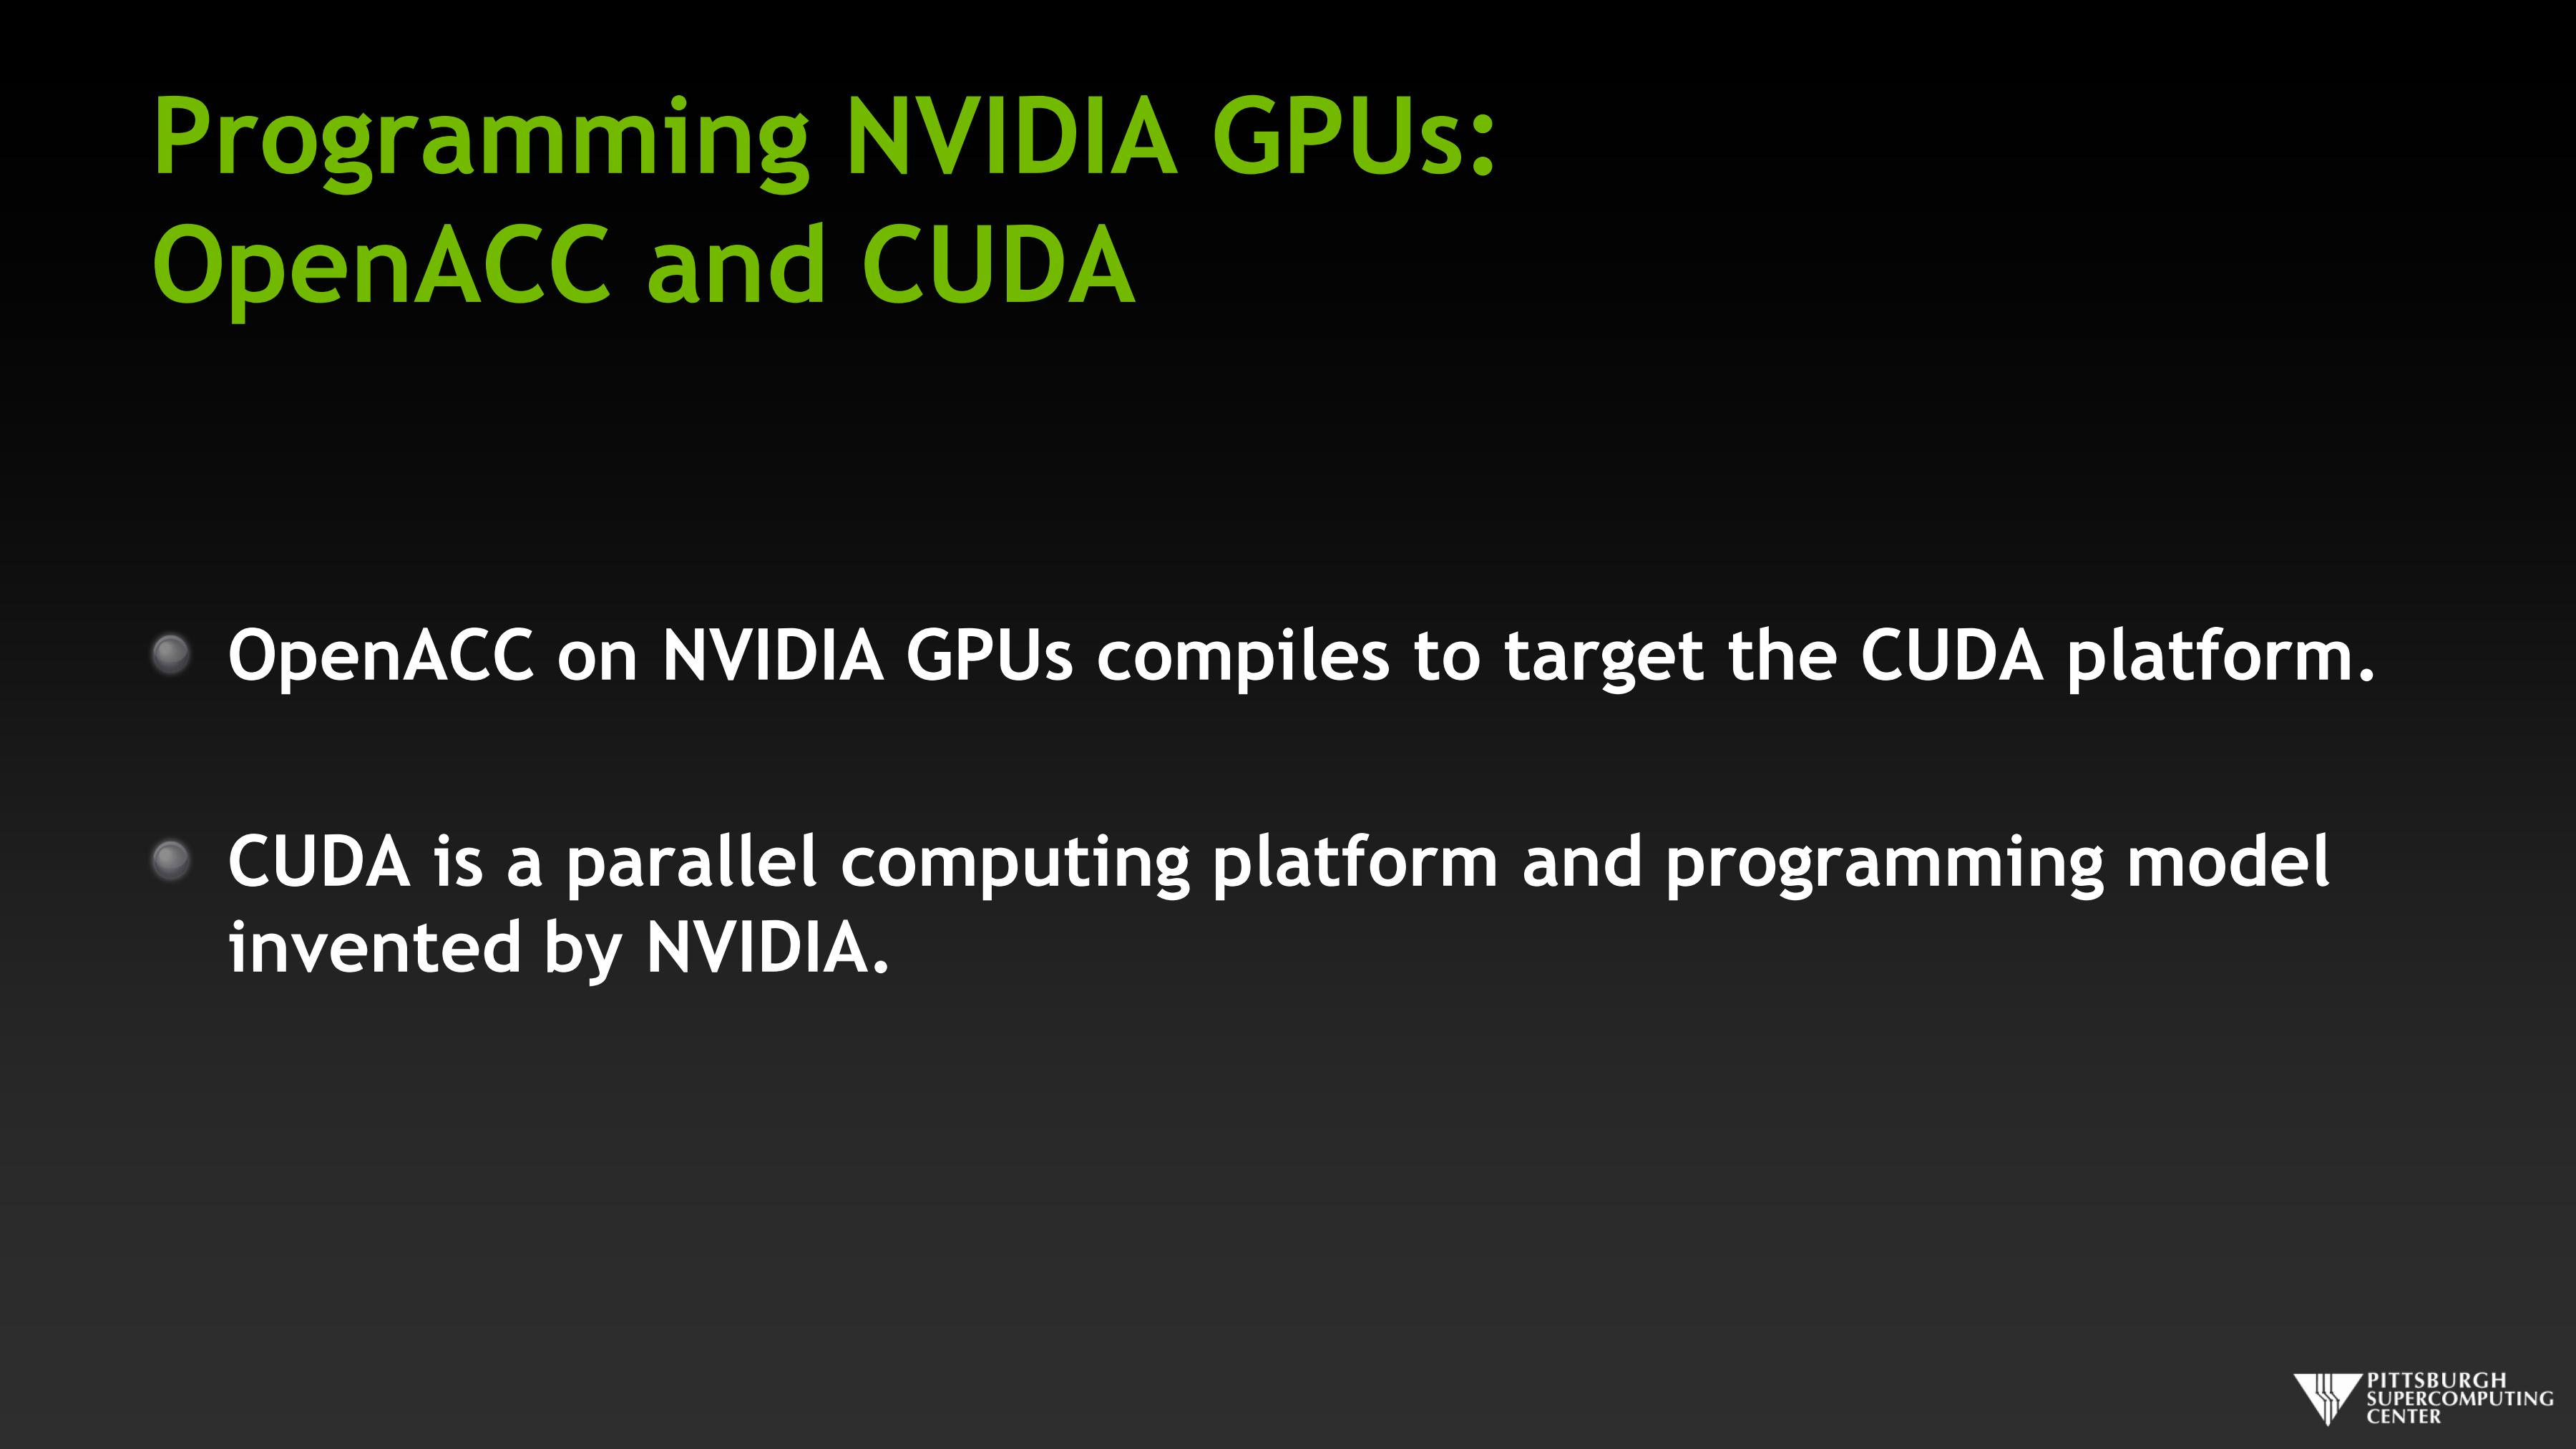 Programming NVIDIA GPUs: OpenACC and CUDA